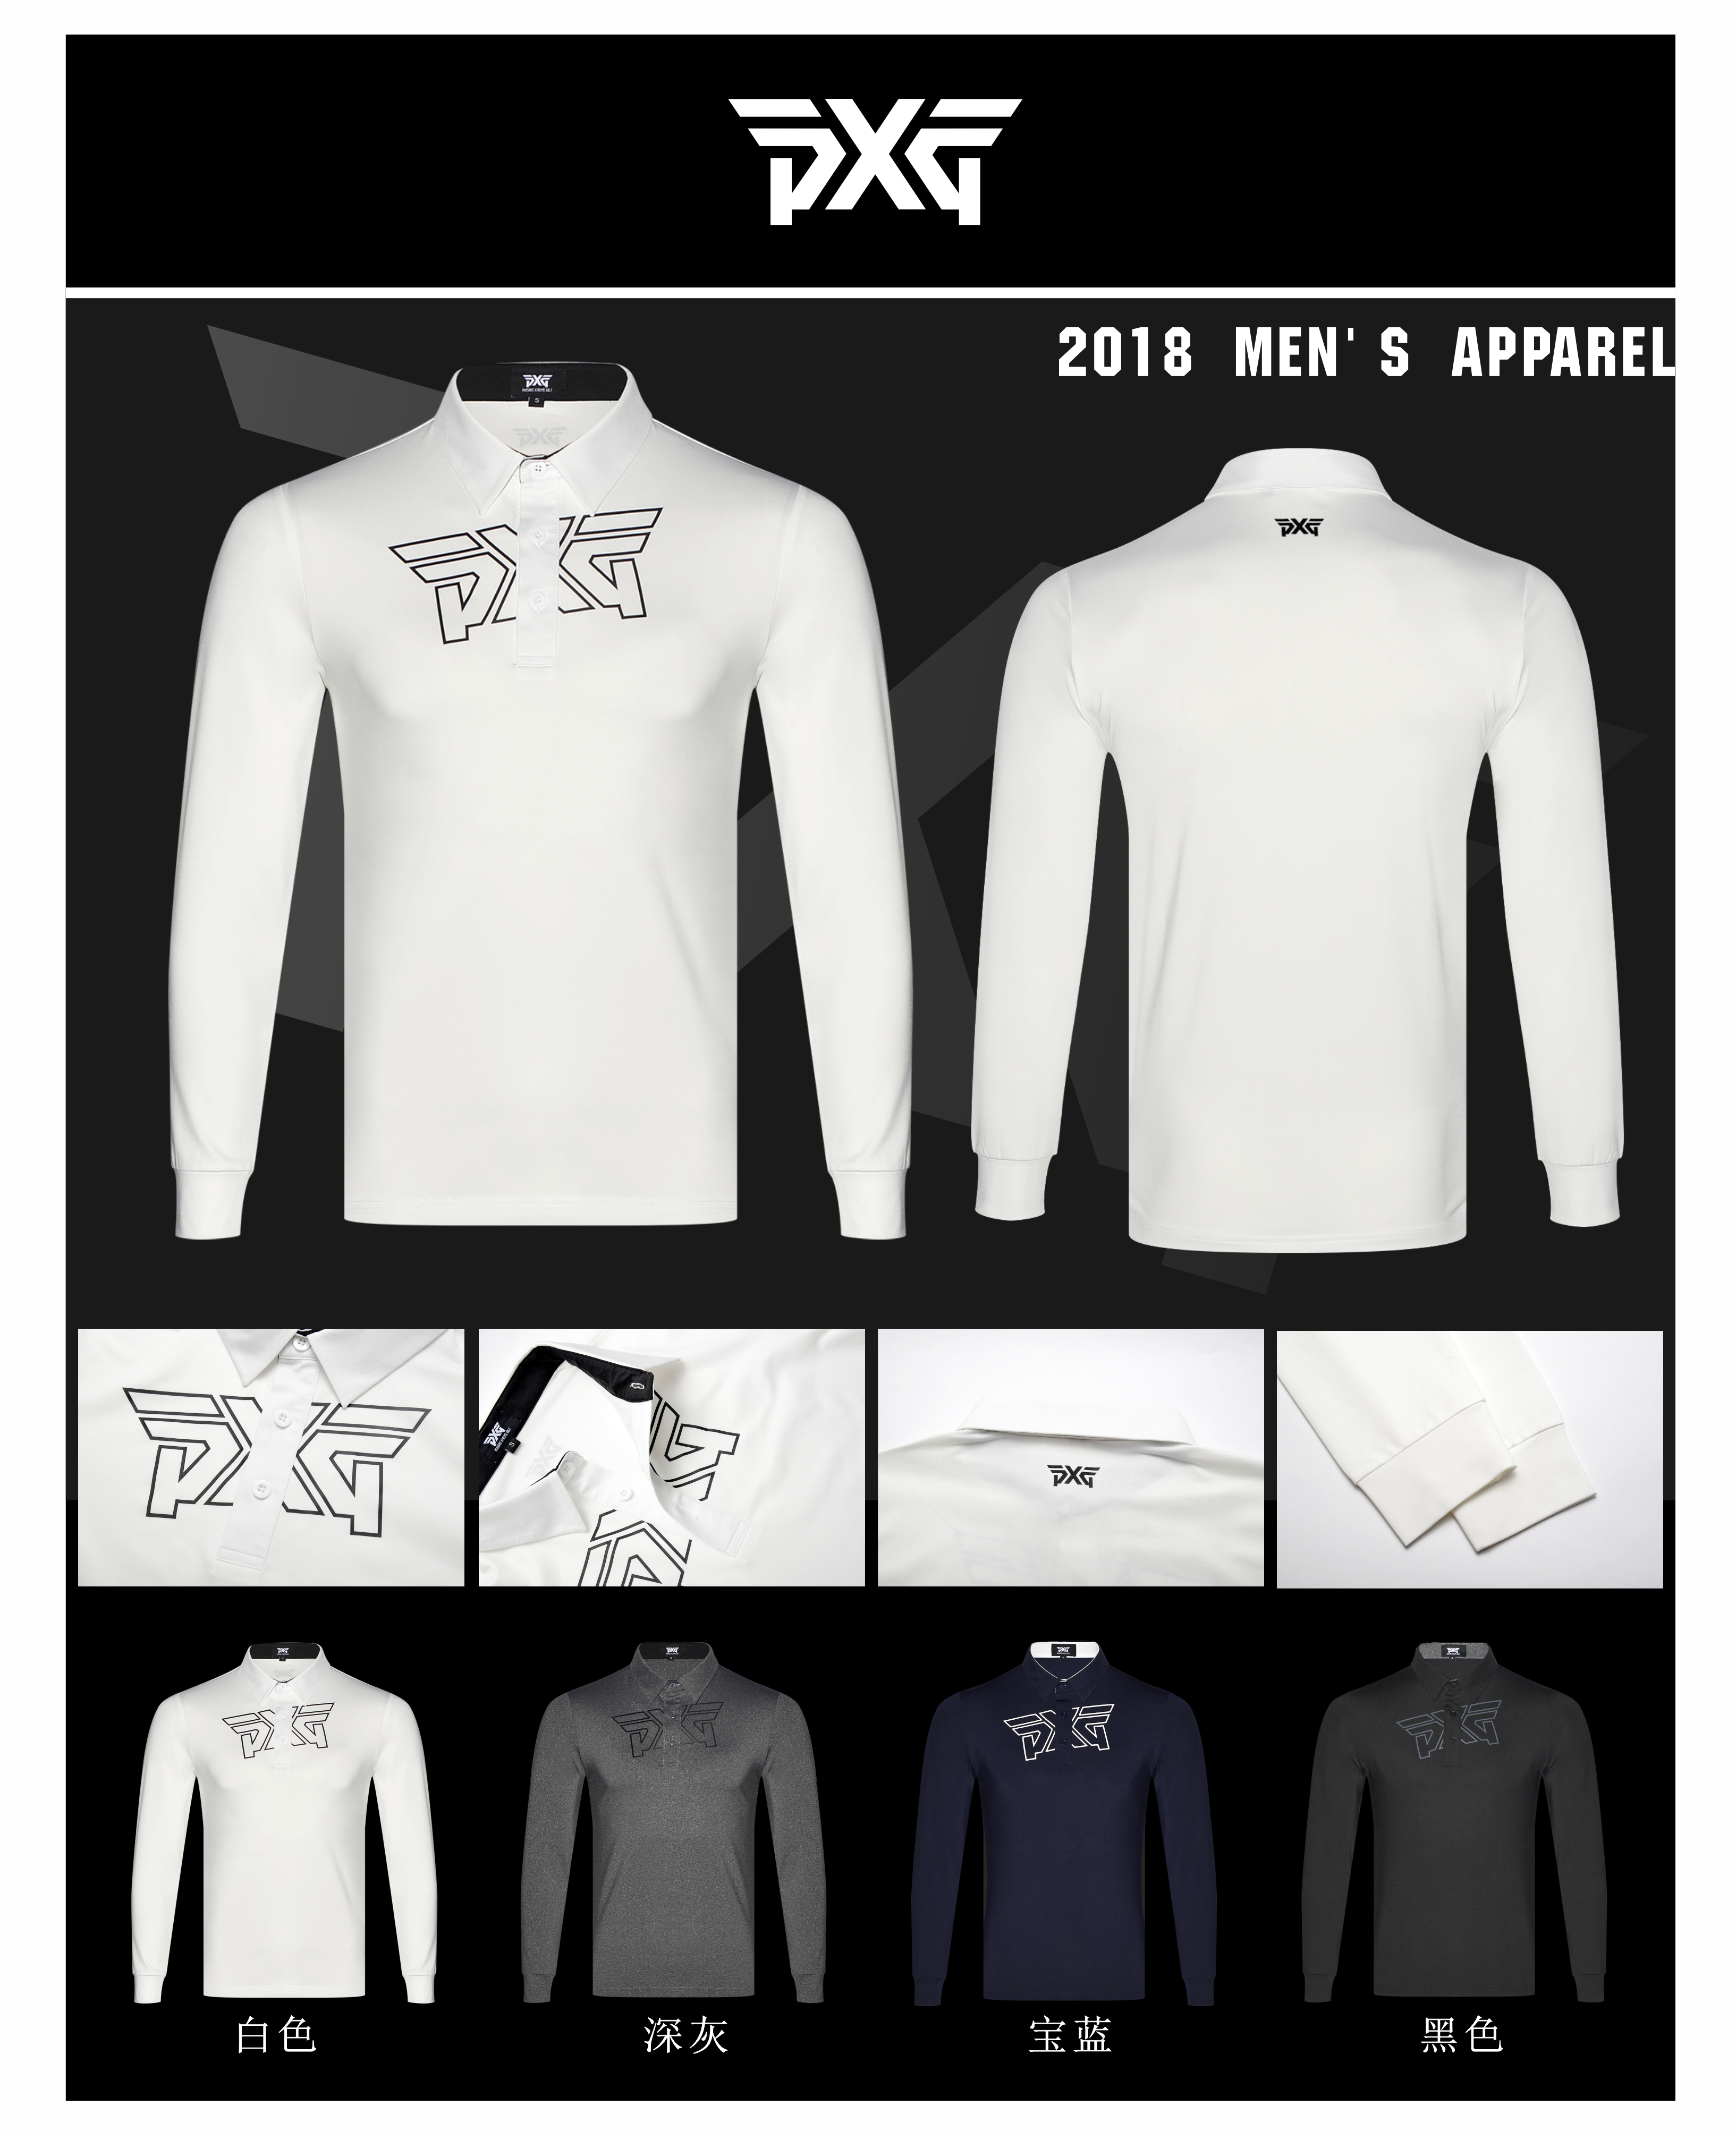 PXG Men Golf shirts Autumn Long Sleeve Golf T Shirt Breathable Sports Clothes Men'S Polo Shirts Tops Brand Shirt pxg golf shirts 4 colors autumn long sleeve golf t shirt button breathable sportswear men s polo shirts striped tops shirt